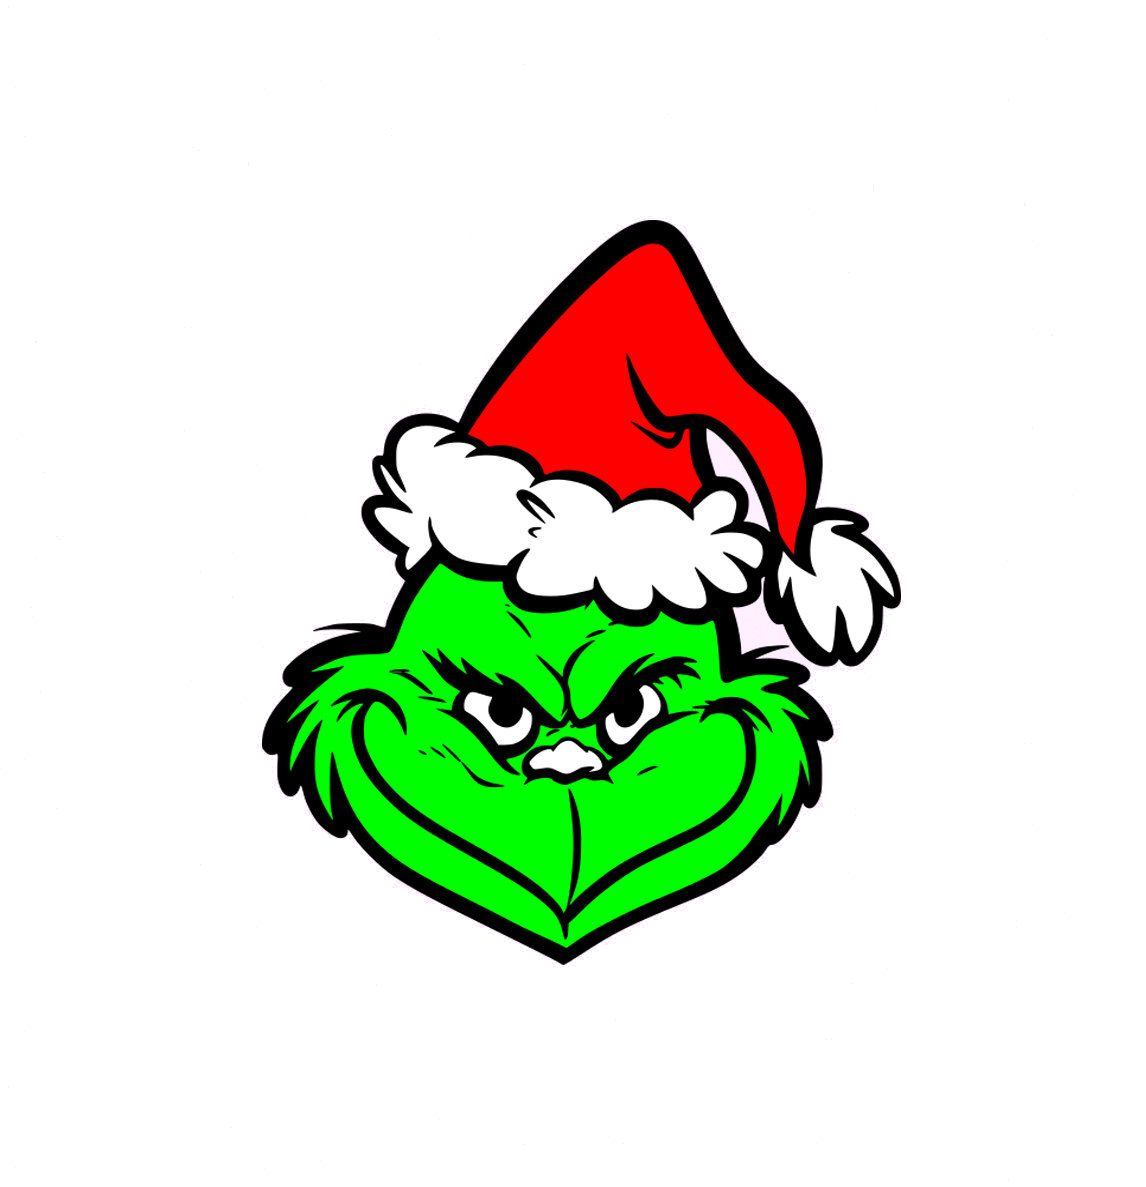 Grinch pictures clipart svg black and white download Grinch Clipart Clip Arts For Free On Transparent Png - AZPng svg black and white download